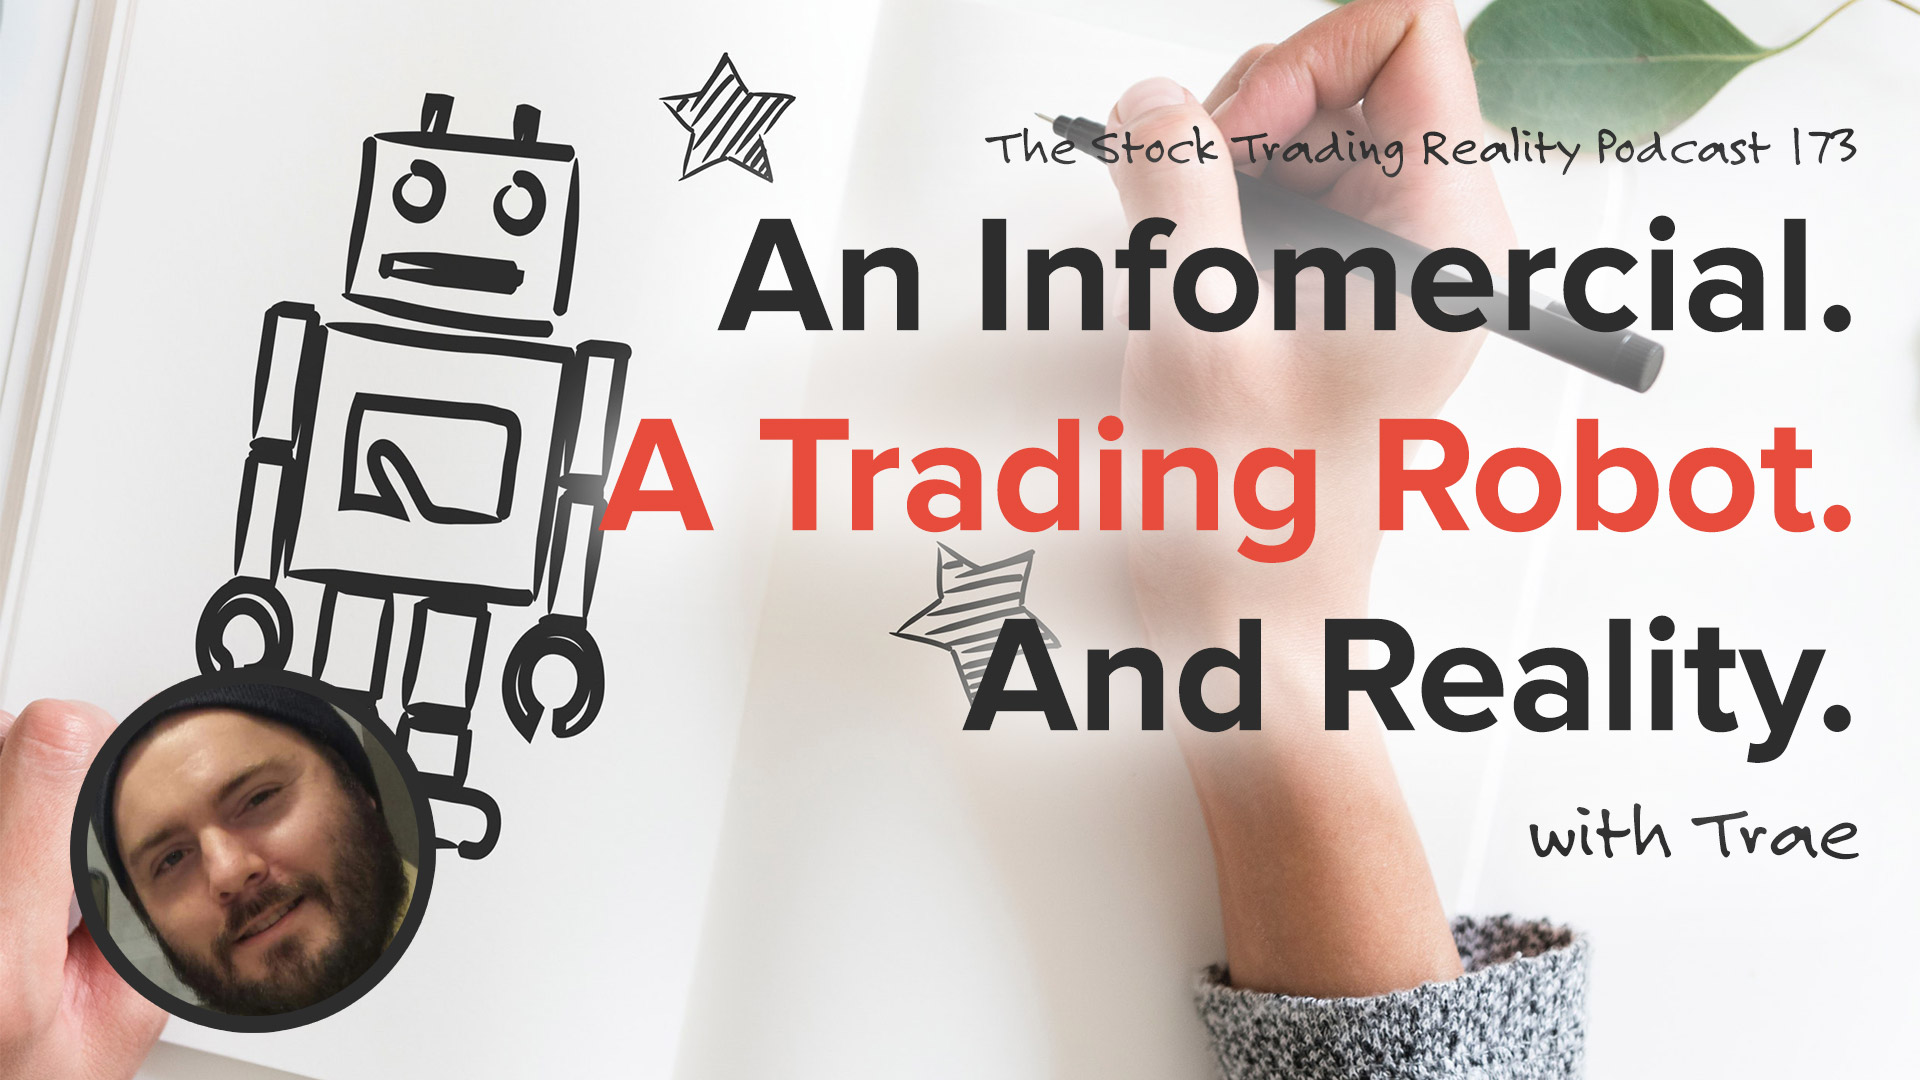 STR 173: An Infomercial. A Trading Robot. And Reality.